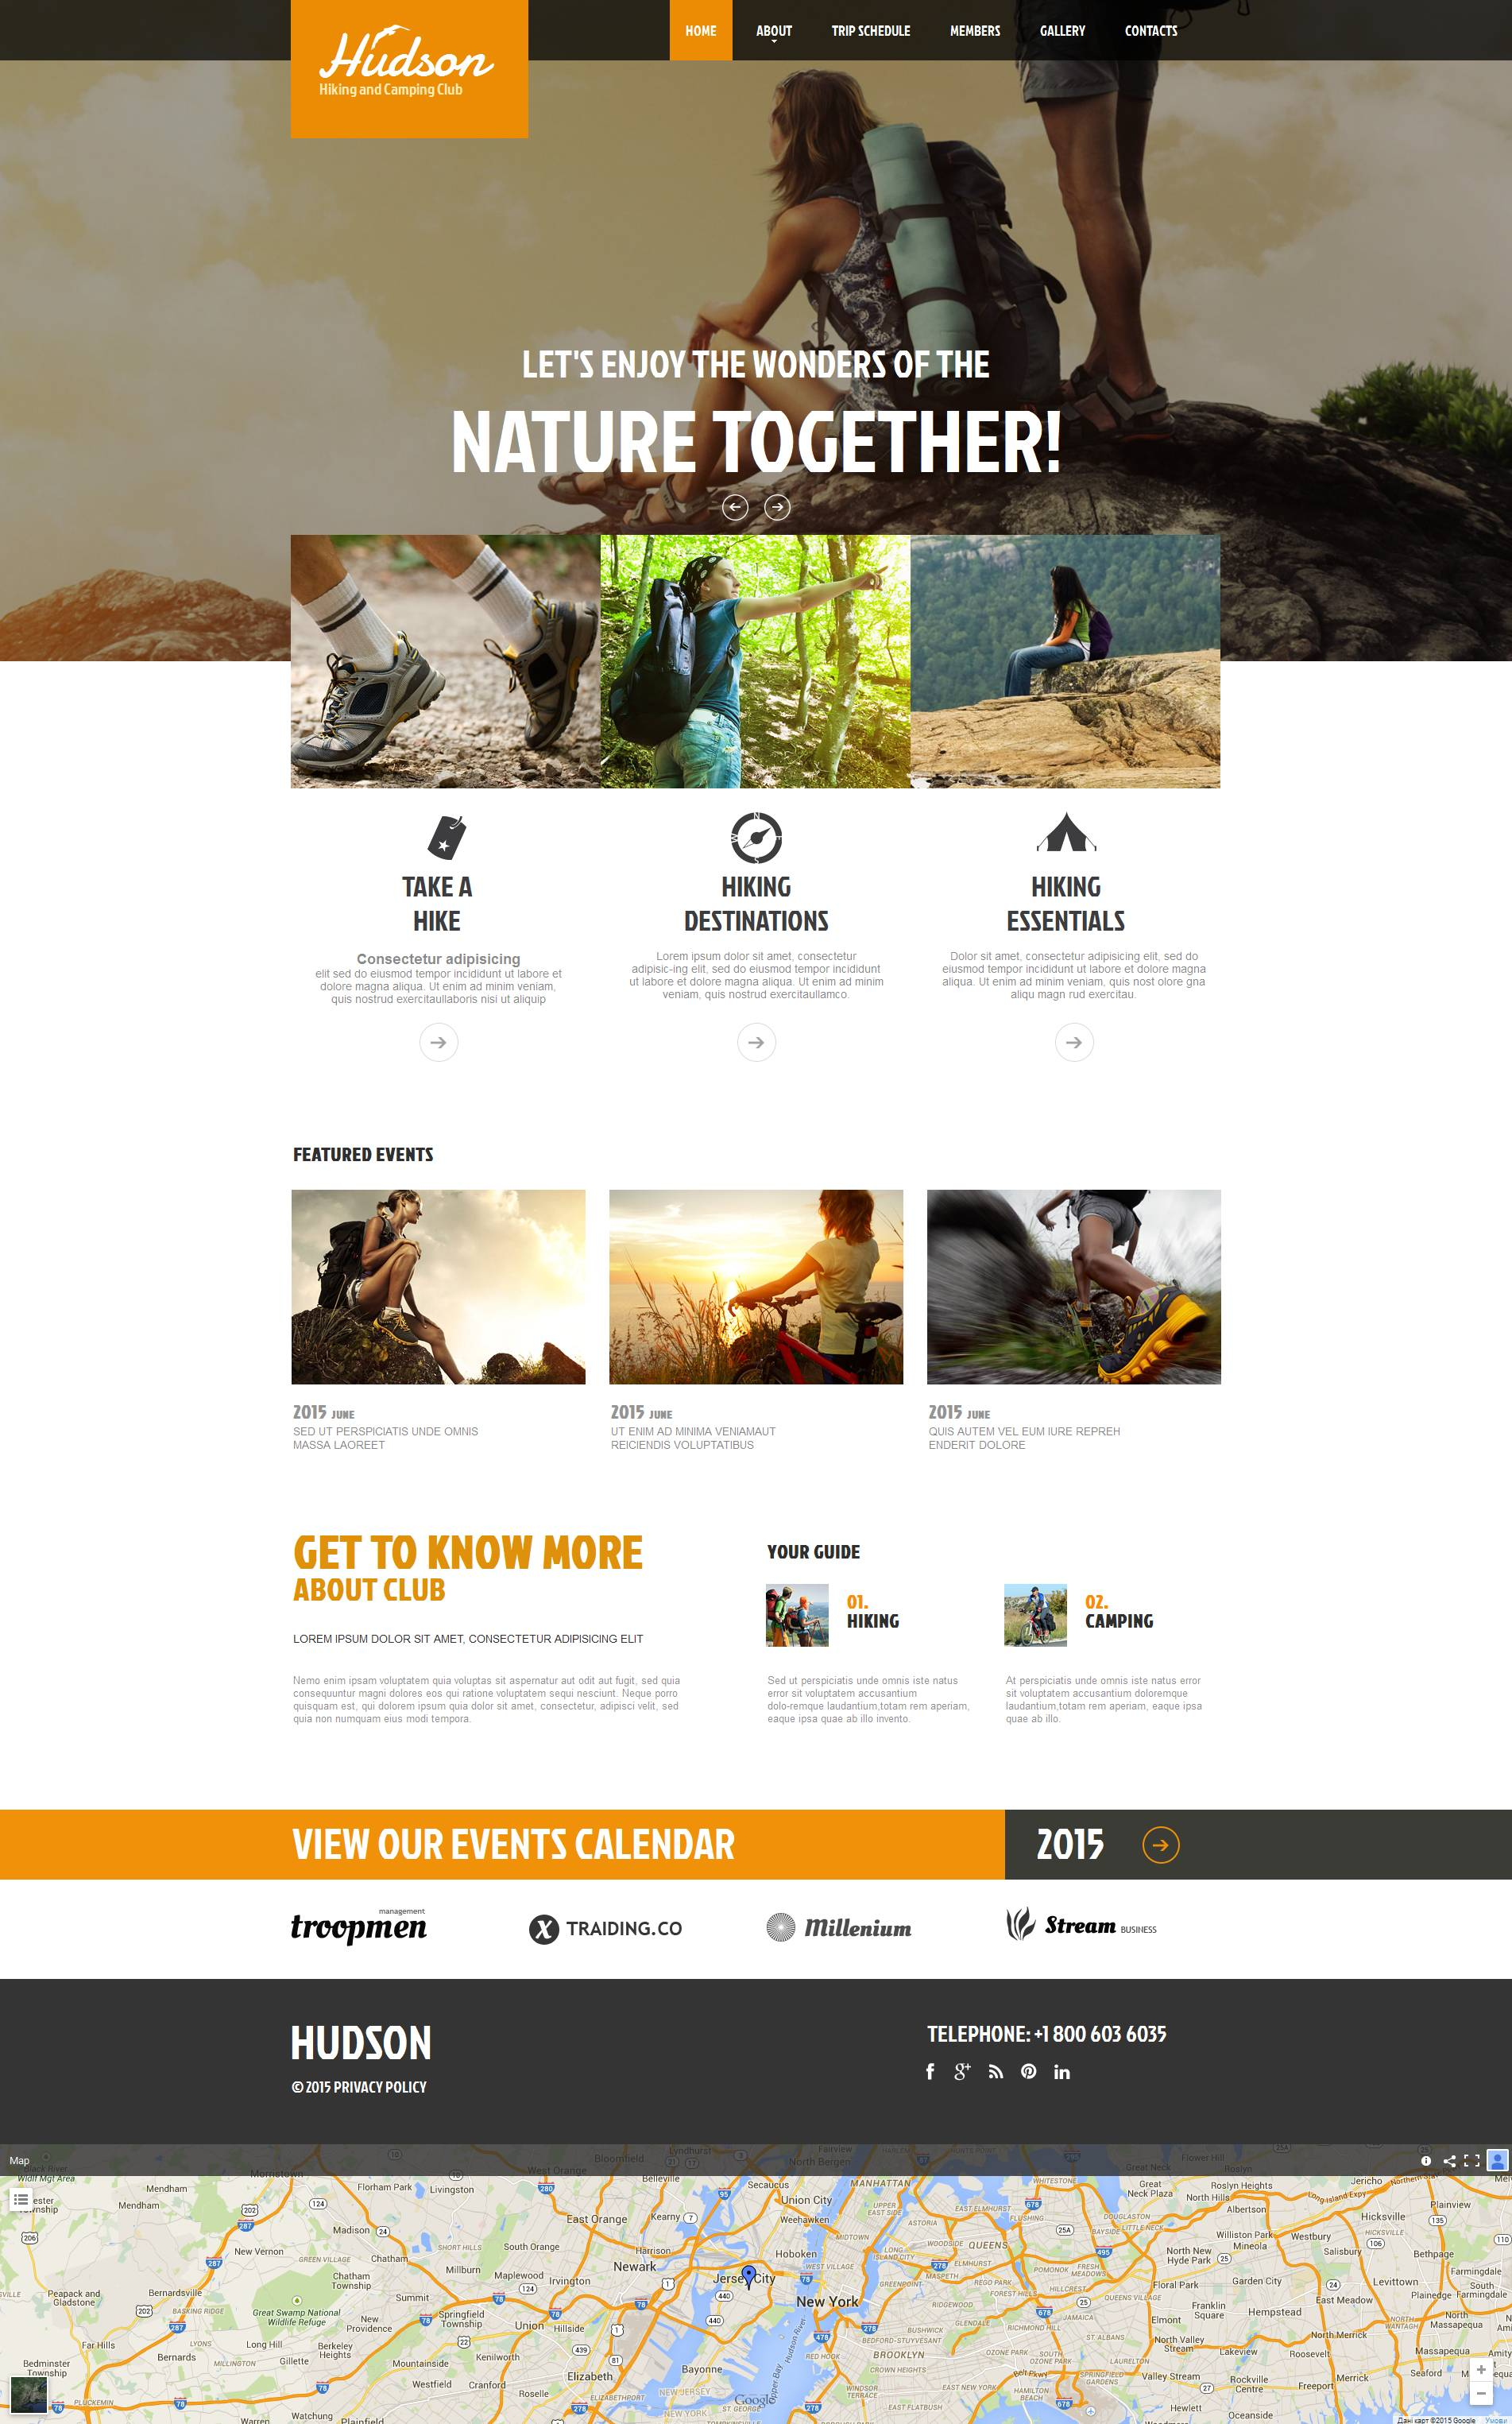 The Hudson Hiking Camping Moto CMS HTML Design 53065, one of the best Moto CMS HTML templates of its kind (sport, most popular), also known as hudson Hiking camping Moto CMS HTML template, tourism Moto CMS HTML template, equipment Moto CMS HTML template, tents Moto CMS HTML template, campers Moto CMS HTML template, motorhome Moto CMS HTML template, hire Moto CMS HTML template, western Moto CMS HTML template, lakes Moto CMS HTML template, mountains Moto CMS HTML template, mid Moto CMS HTML template, coast Moto CMS HTML template, down Moto CMS HTML template, east Moto CMS HTML template, sunrise Moto CMS HTML template, country Moto CMS HTML template, tourists Moto CMS HTML template, guide Moto CMS HTML template, tips Moto CMS HTML template, regions Moto CMS HTML template, destination Moto CMS HTML template, map Moto CMS HTML template, compass Moto CMS HTML template, info Moto CMS HTML template, statewide Moto CMS HTML template, activity Moto CMS HTML template, gallery Moto CMS HTML template, location Moto CMS HTML template, relaxation Moto CMS HTML template, recreation Moto CMS HTML template, impression Moto CMS HTML template, vacatio and related with hudson Hiking camping, tourism, equipment, tents, campers, motorhome, hire, western, lakes, mountains, mid, coast, down, east, sunrise, country, tourists, guide, tips, regions, destination, map, compass, info, statewide, activity, gallery, location, relaxation, recreation, impression, vacatio, etc.